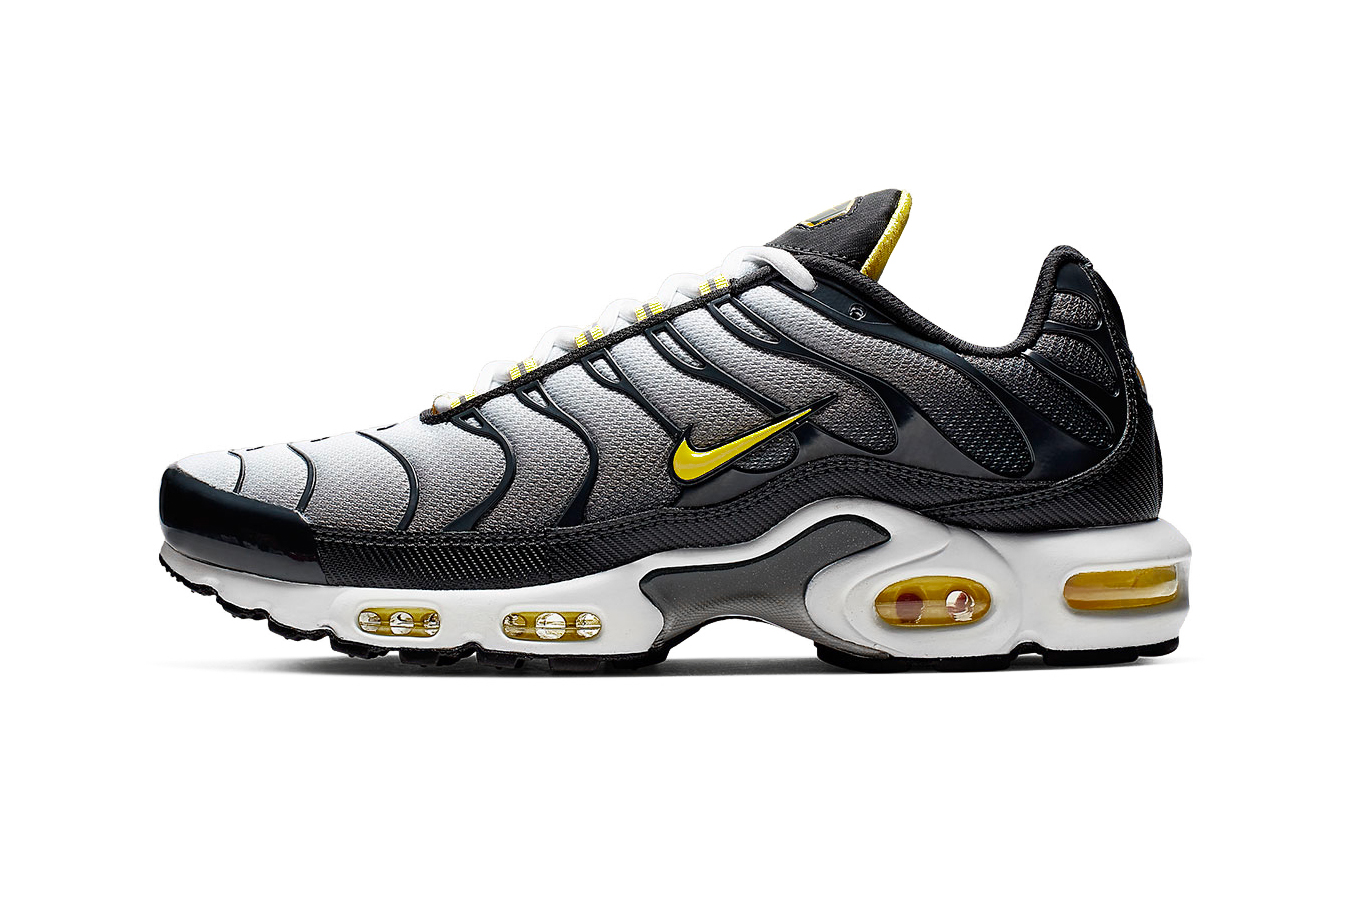 """Nike Electrifies Air Max Plus With """"Bumble Bee"""" Colorway grey black yellow footwear release drop date images price info"""